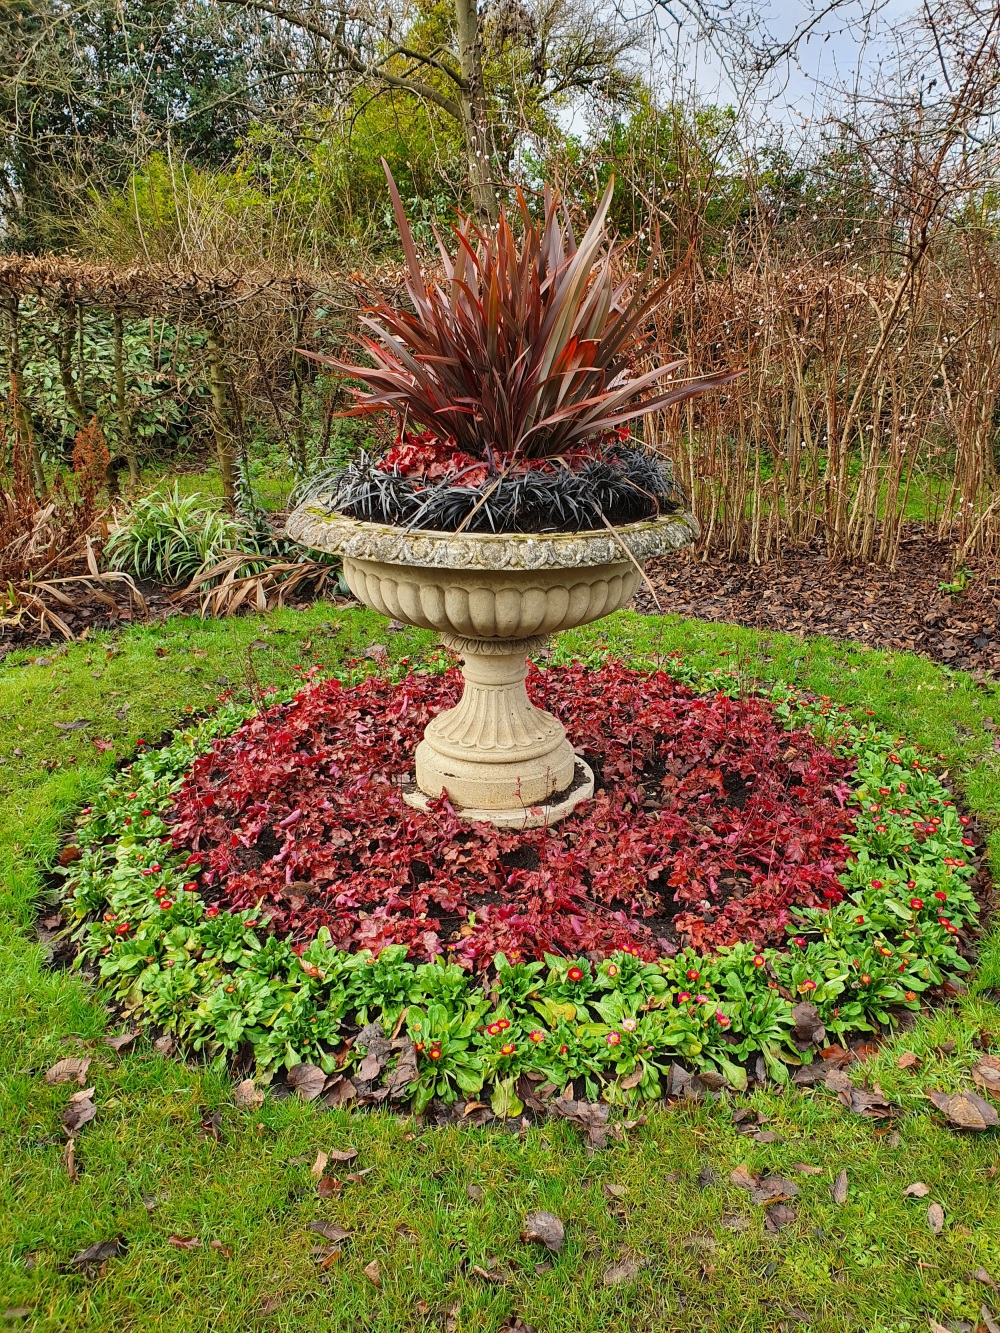 Ornamental flower pot in Regents Park